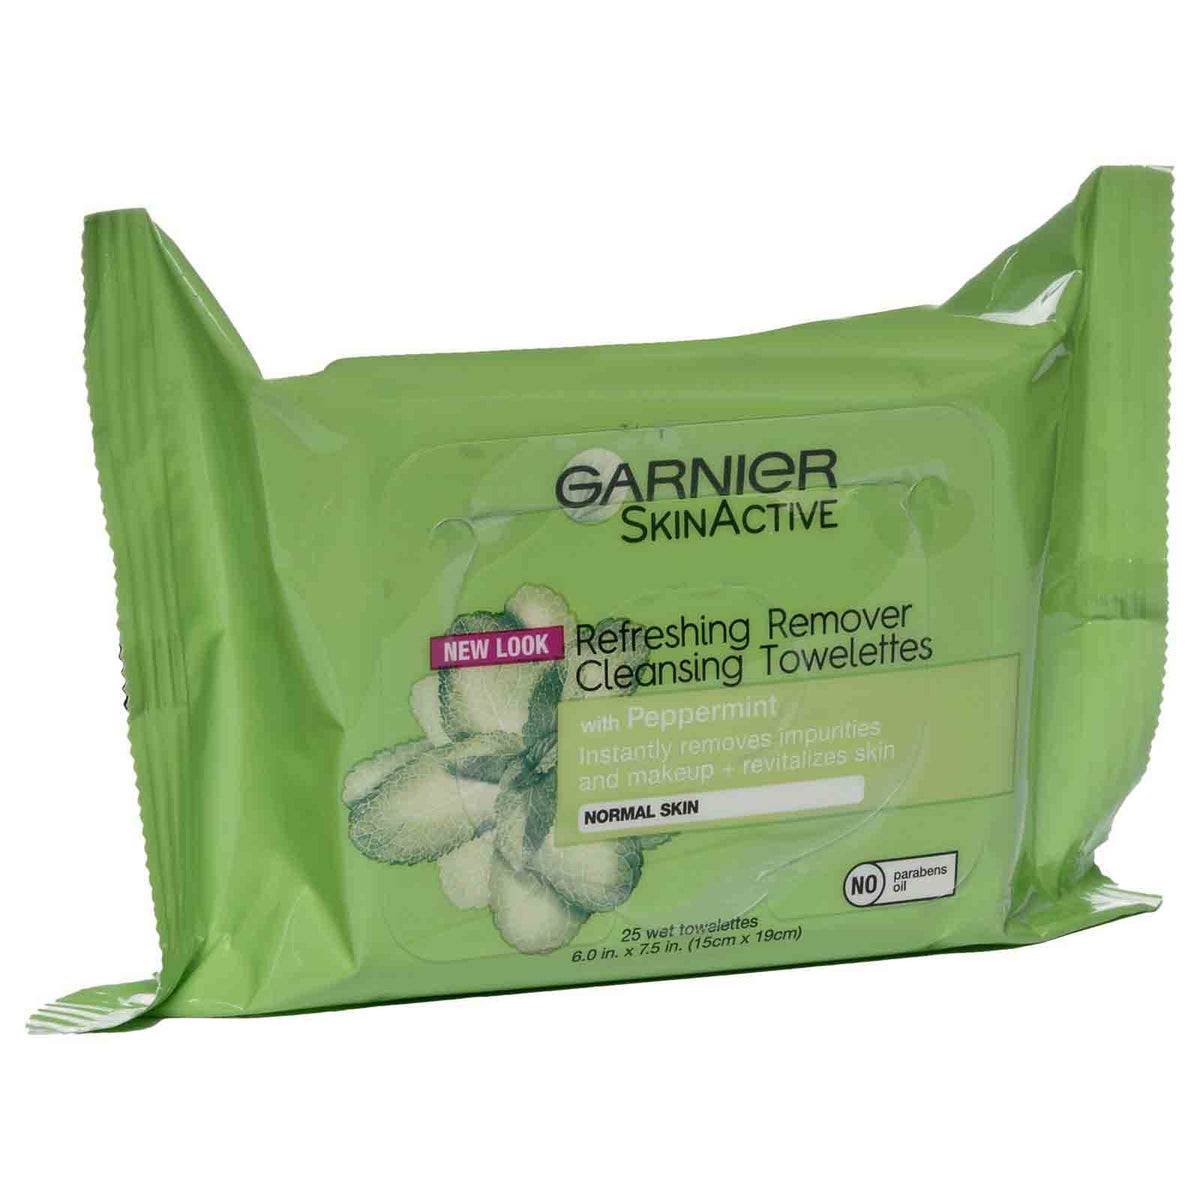 Garnier Skinactive Clean+ Refreshing Cleansing Towelettes